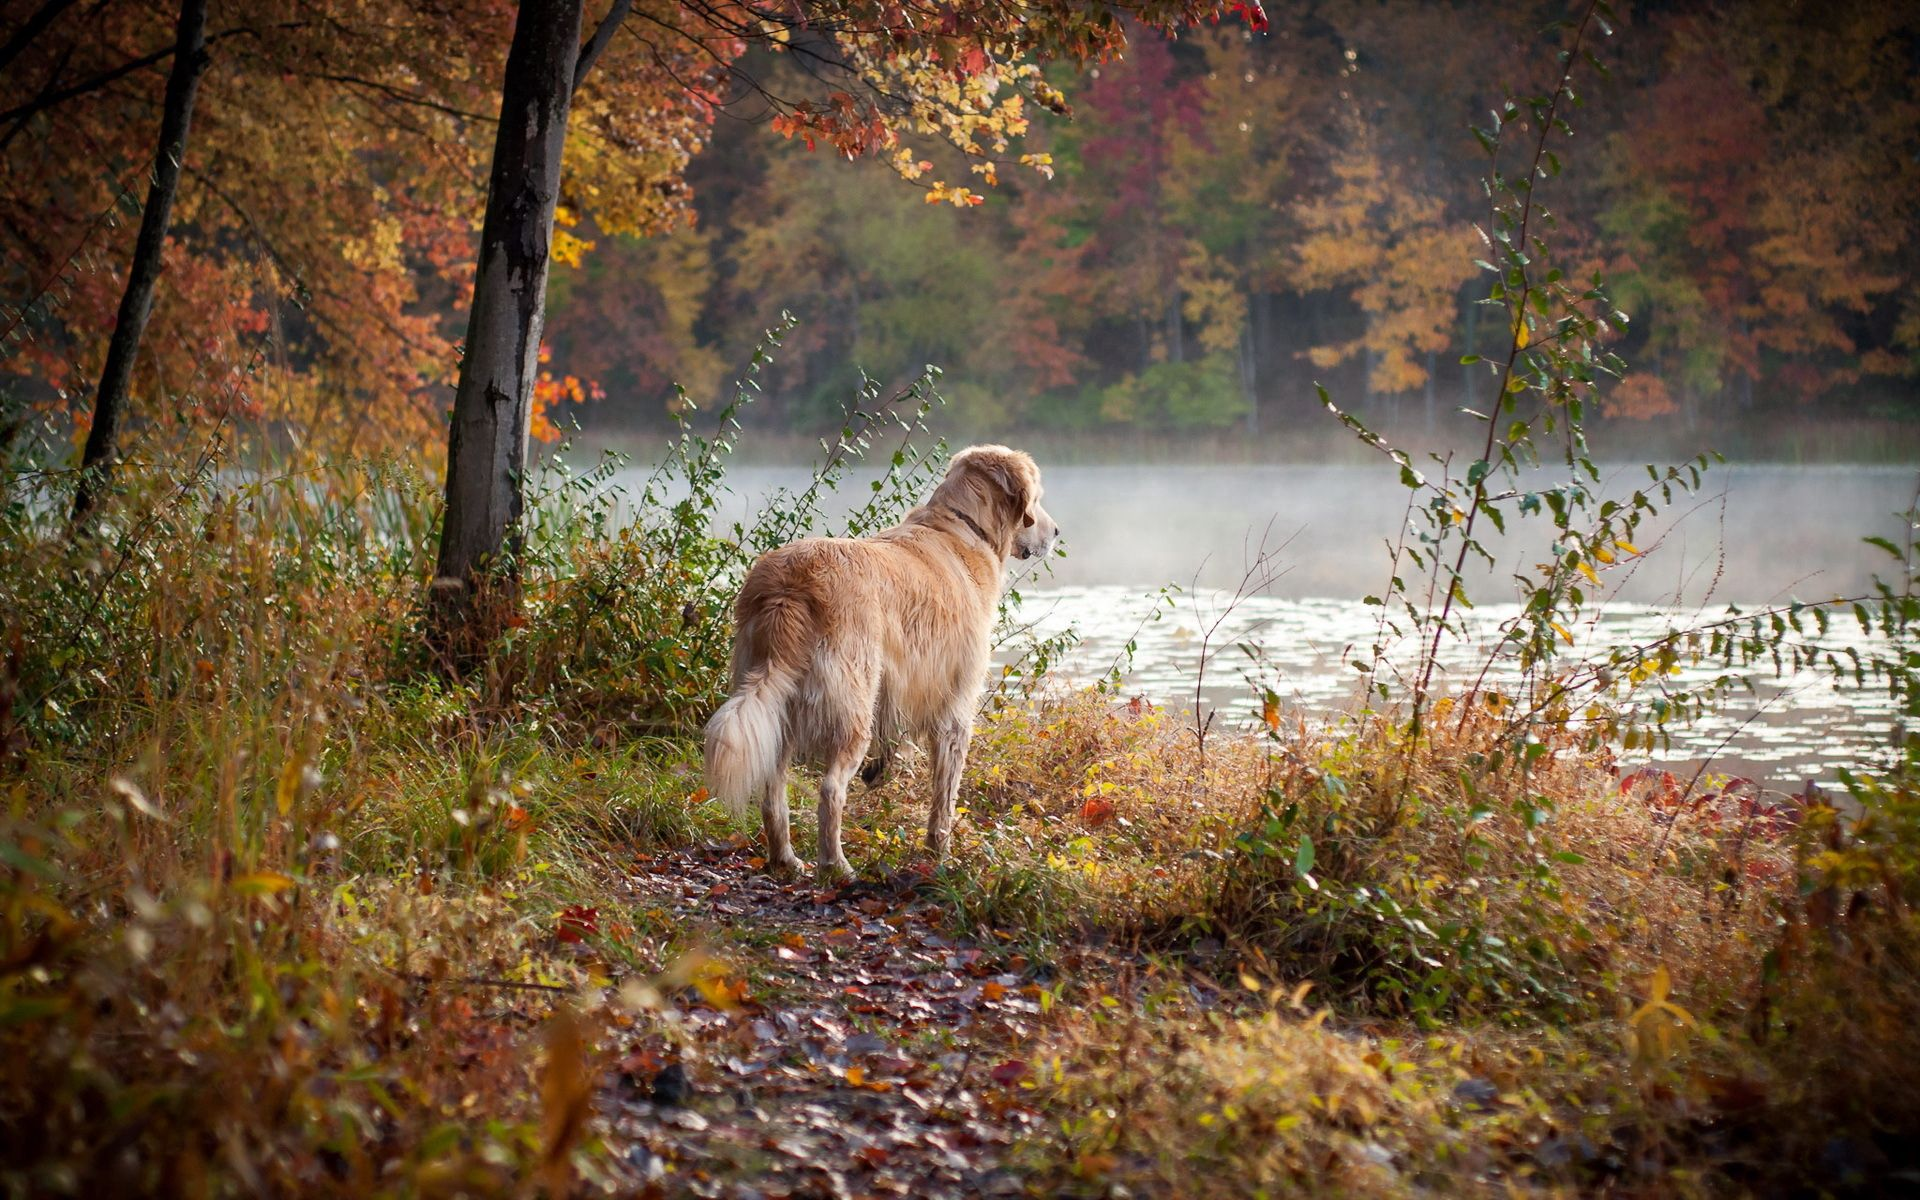 86559 download wallpaper Animals, Dog, Rivers, Grass, Stroll screensavers and pictures for free